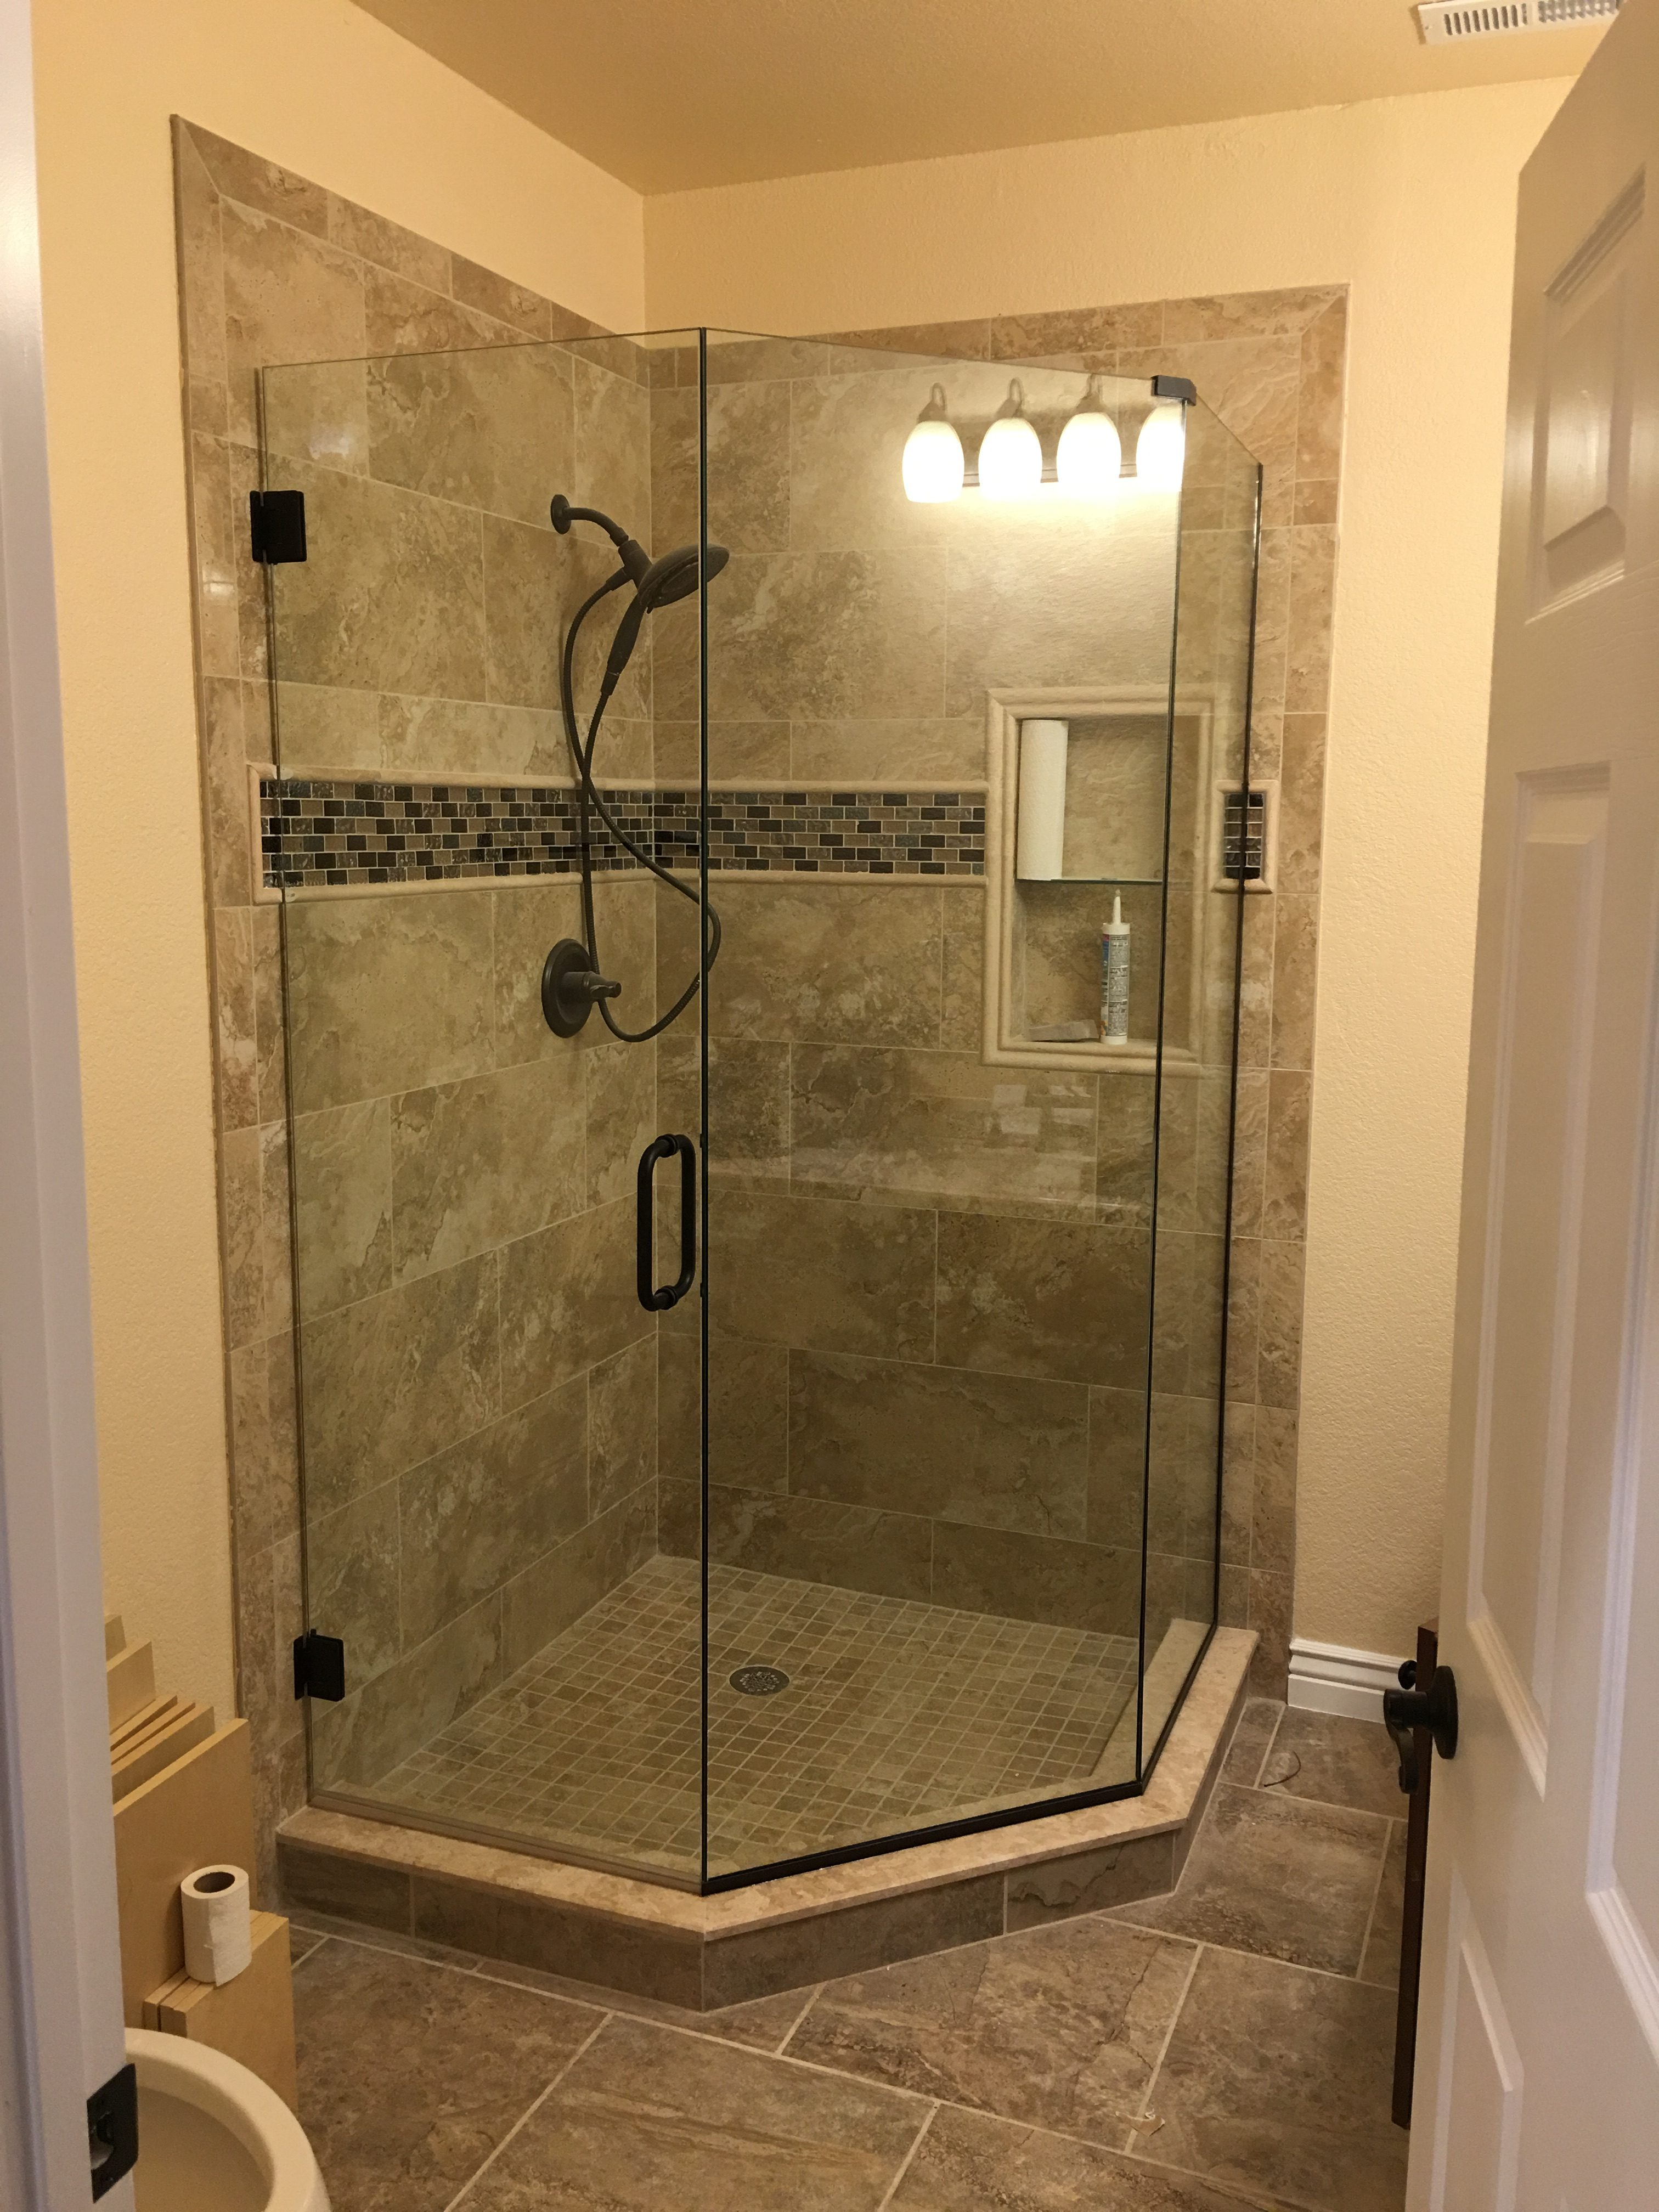 Westminster Construction And Remodeling Alton Construction - Bathroom remodel broomfield co